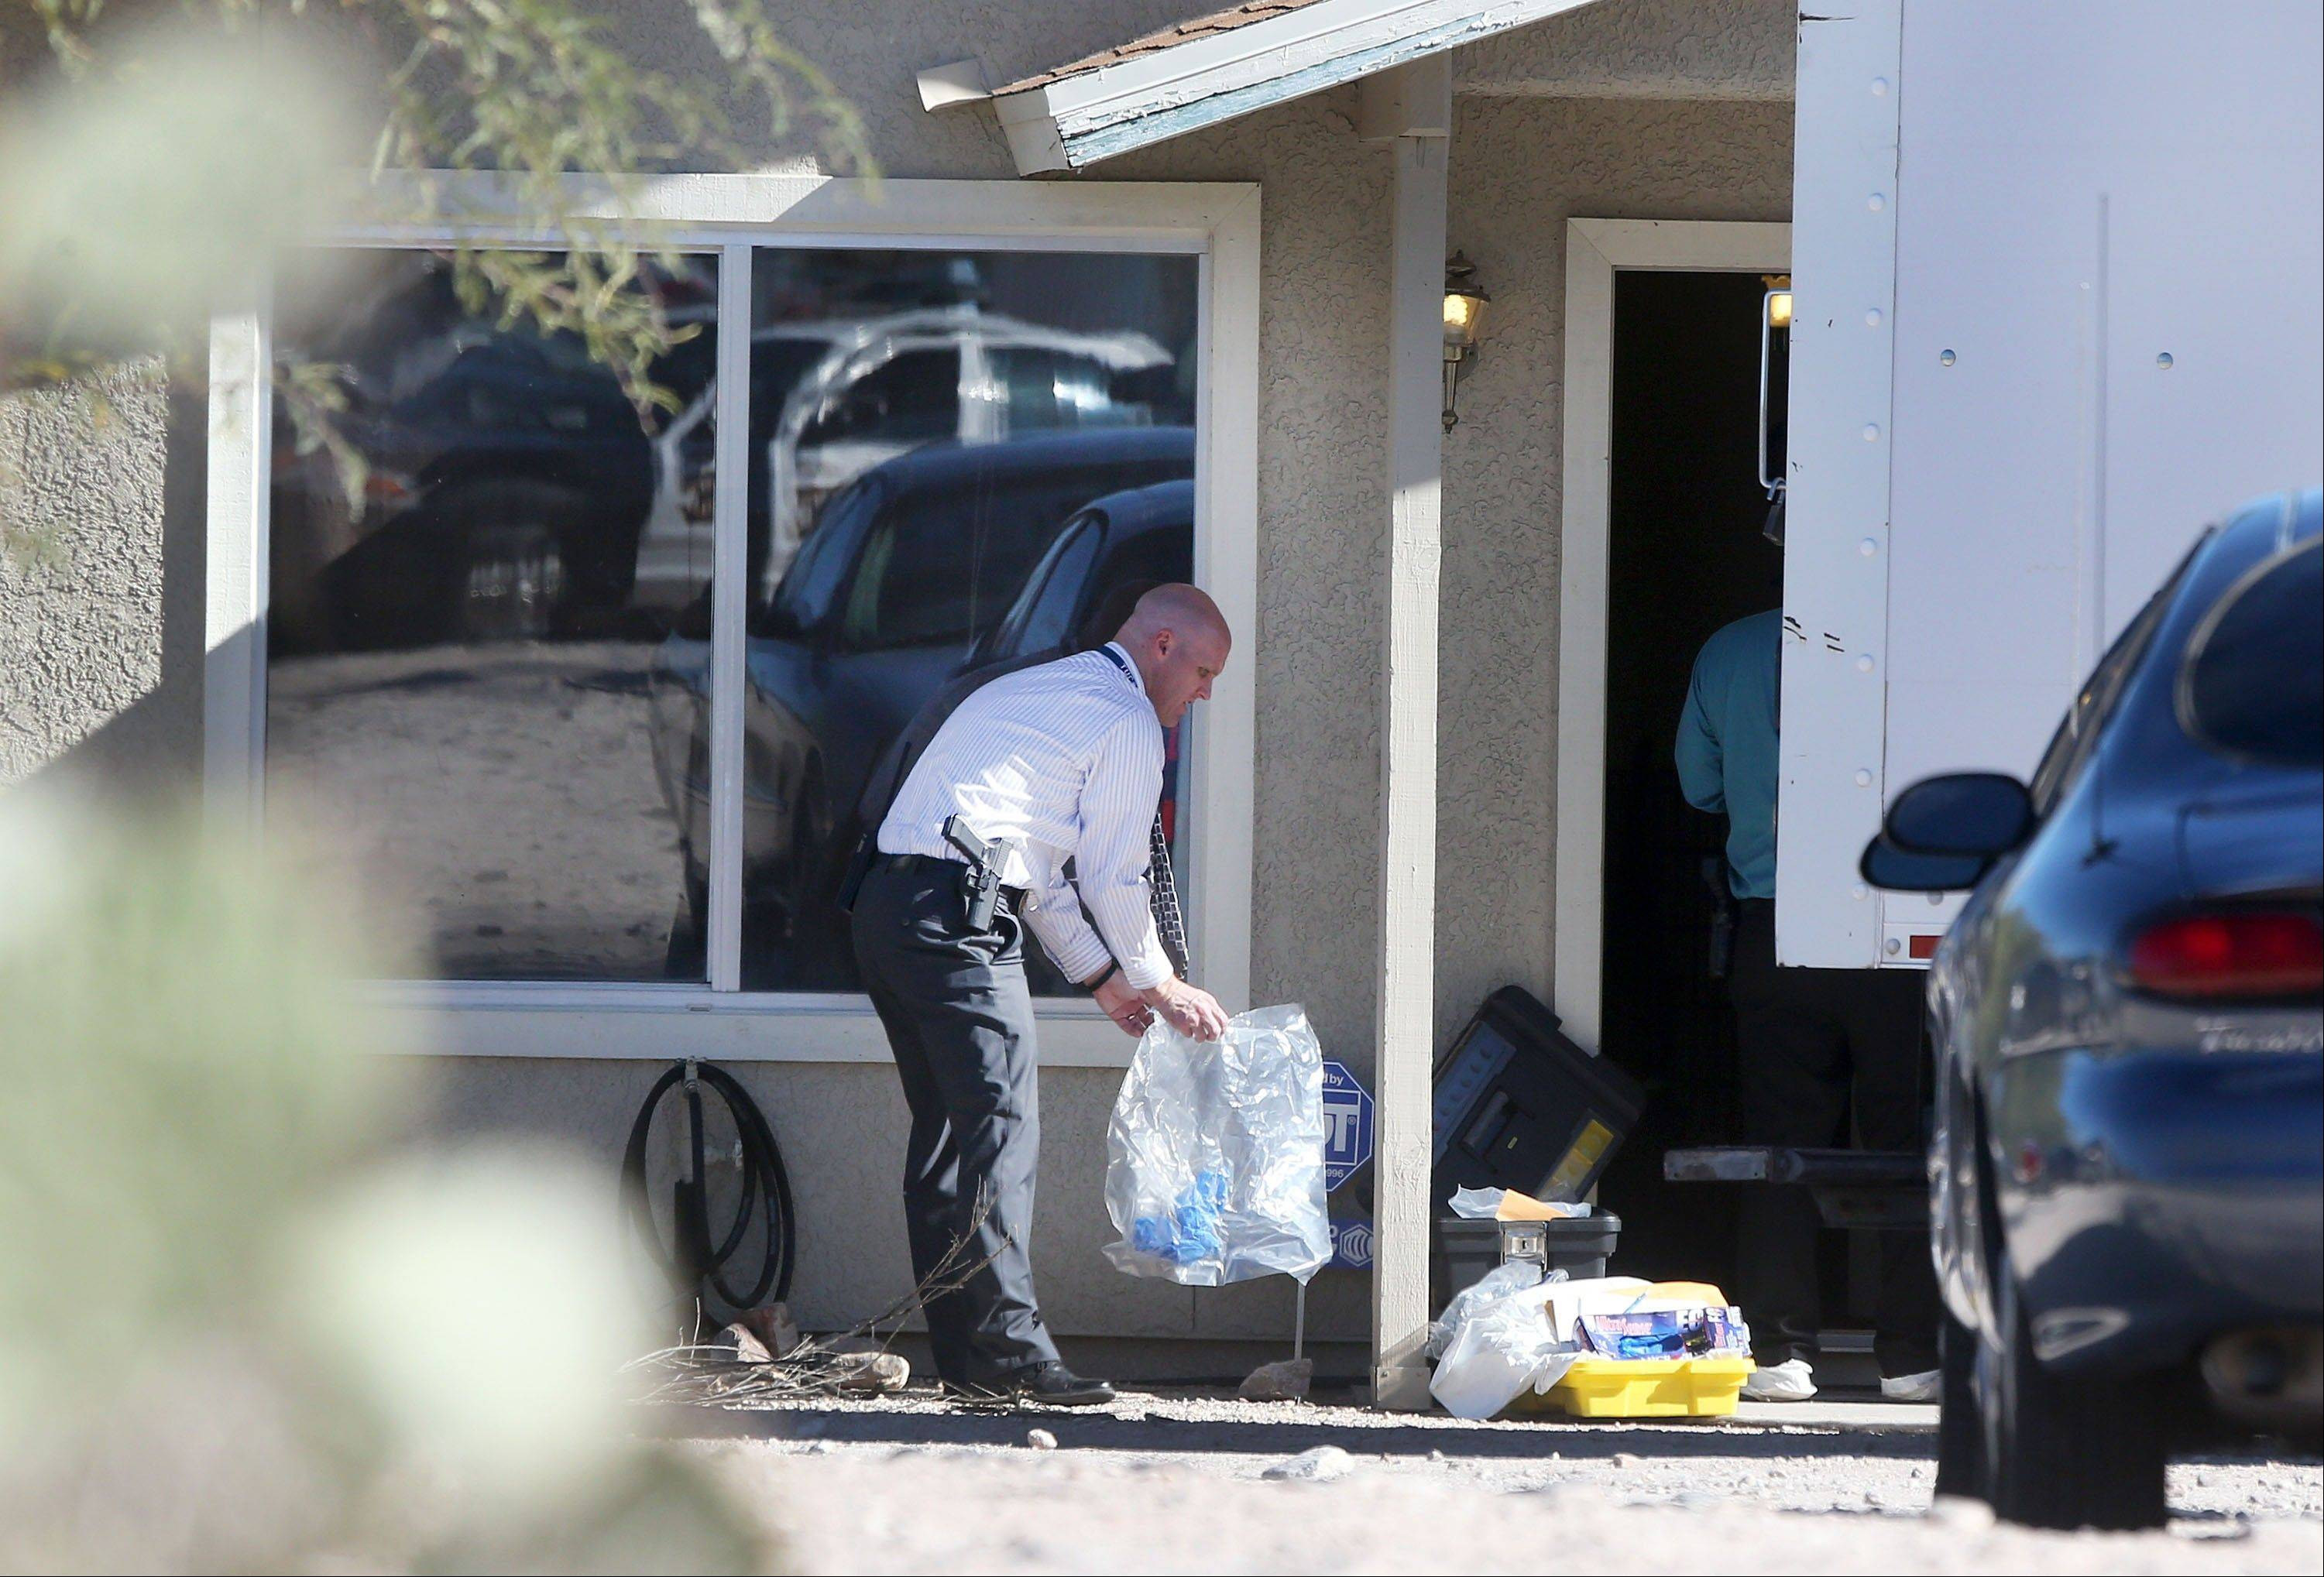 Tucson Police Department investigators and evidence technicians investigate the scene at a home where two people were arrested Tuesday, Nov. 26, 2013, after three girls told authorities that they have been imprisoned for possibly the past two years, in Tucson, Ariz. Tucson police said the girls are siblings ó ages 12, 13 and 17 ó and their mother and stepfather have been arrested in a case that's being investigated as alleged child abuse and imprisonment.